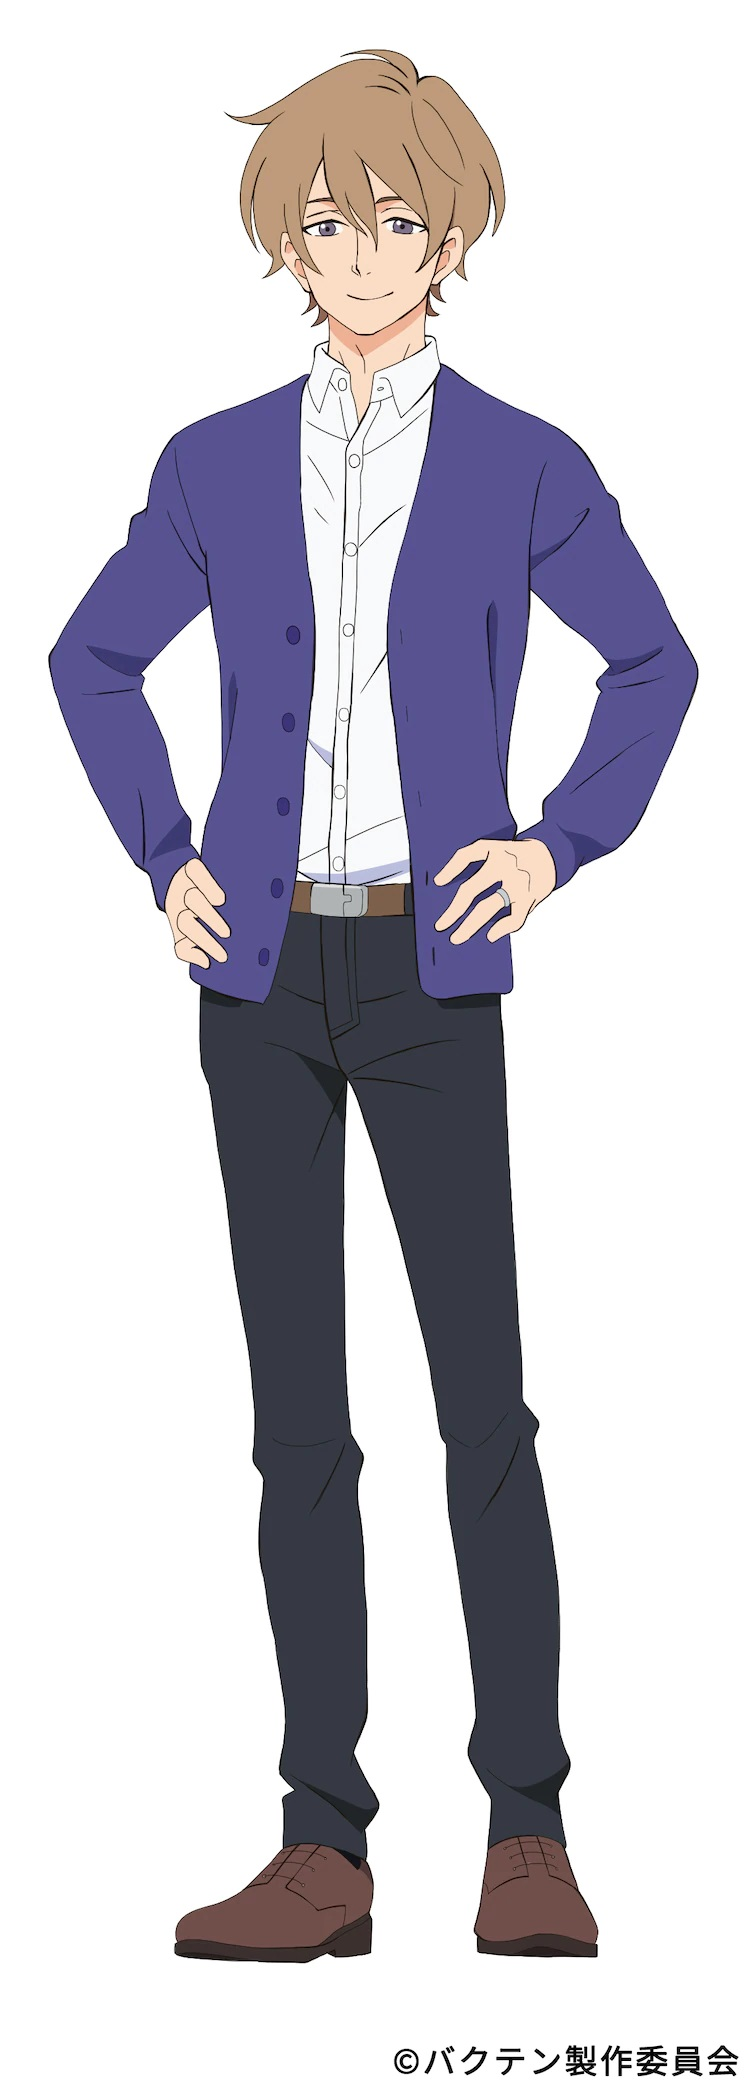 A character setting of Shuusaku Shida, a slender man with a gentle expression who acts as the coach for the men's rhythmic gymnastics club at Soshukan High School in the upcoming Bakuten!! TV anime.